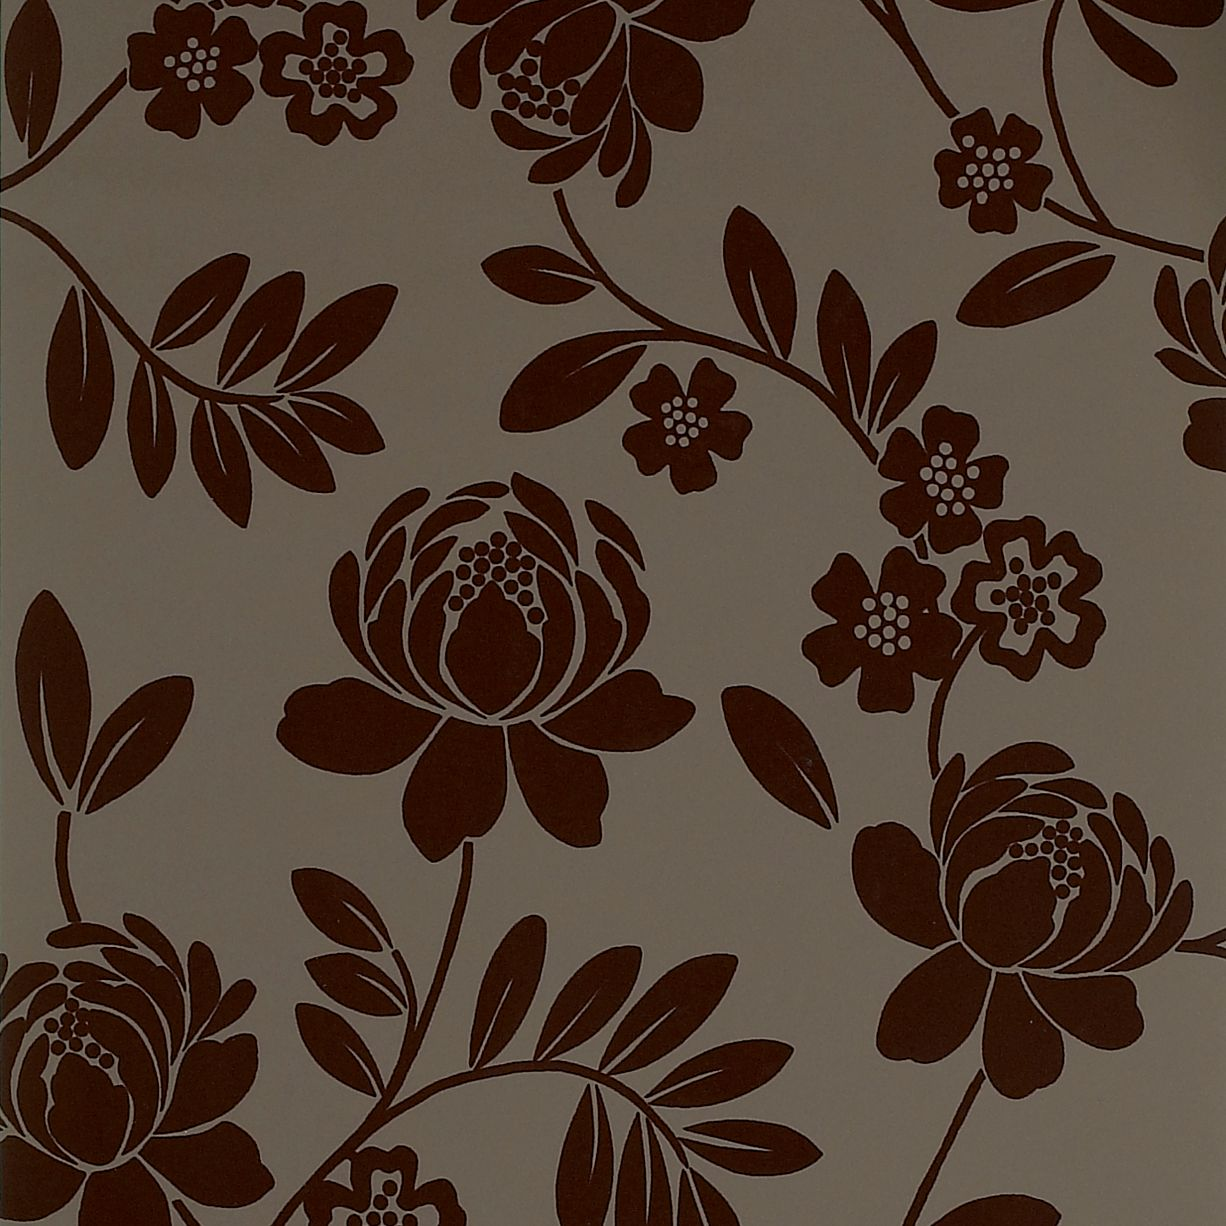 Kristen Floral Brown Flock Wallpaper Departments DIY at BQ 1226x1226